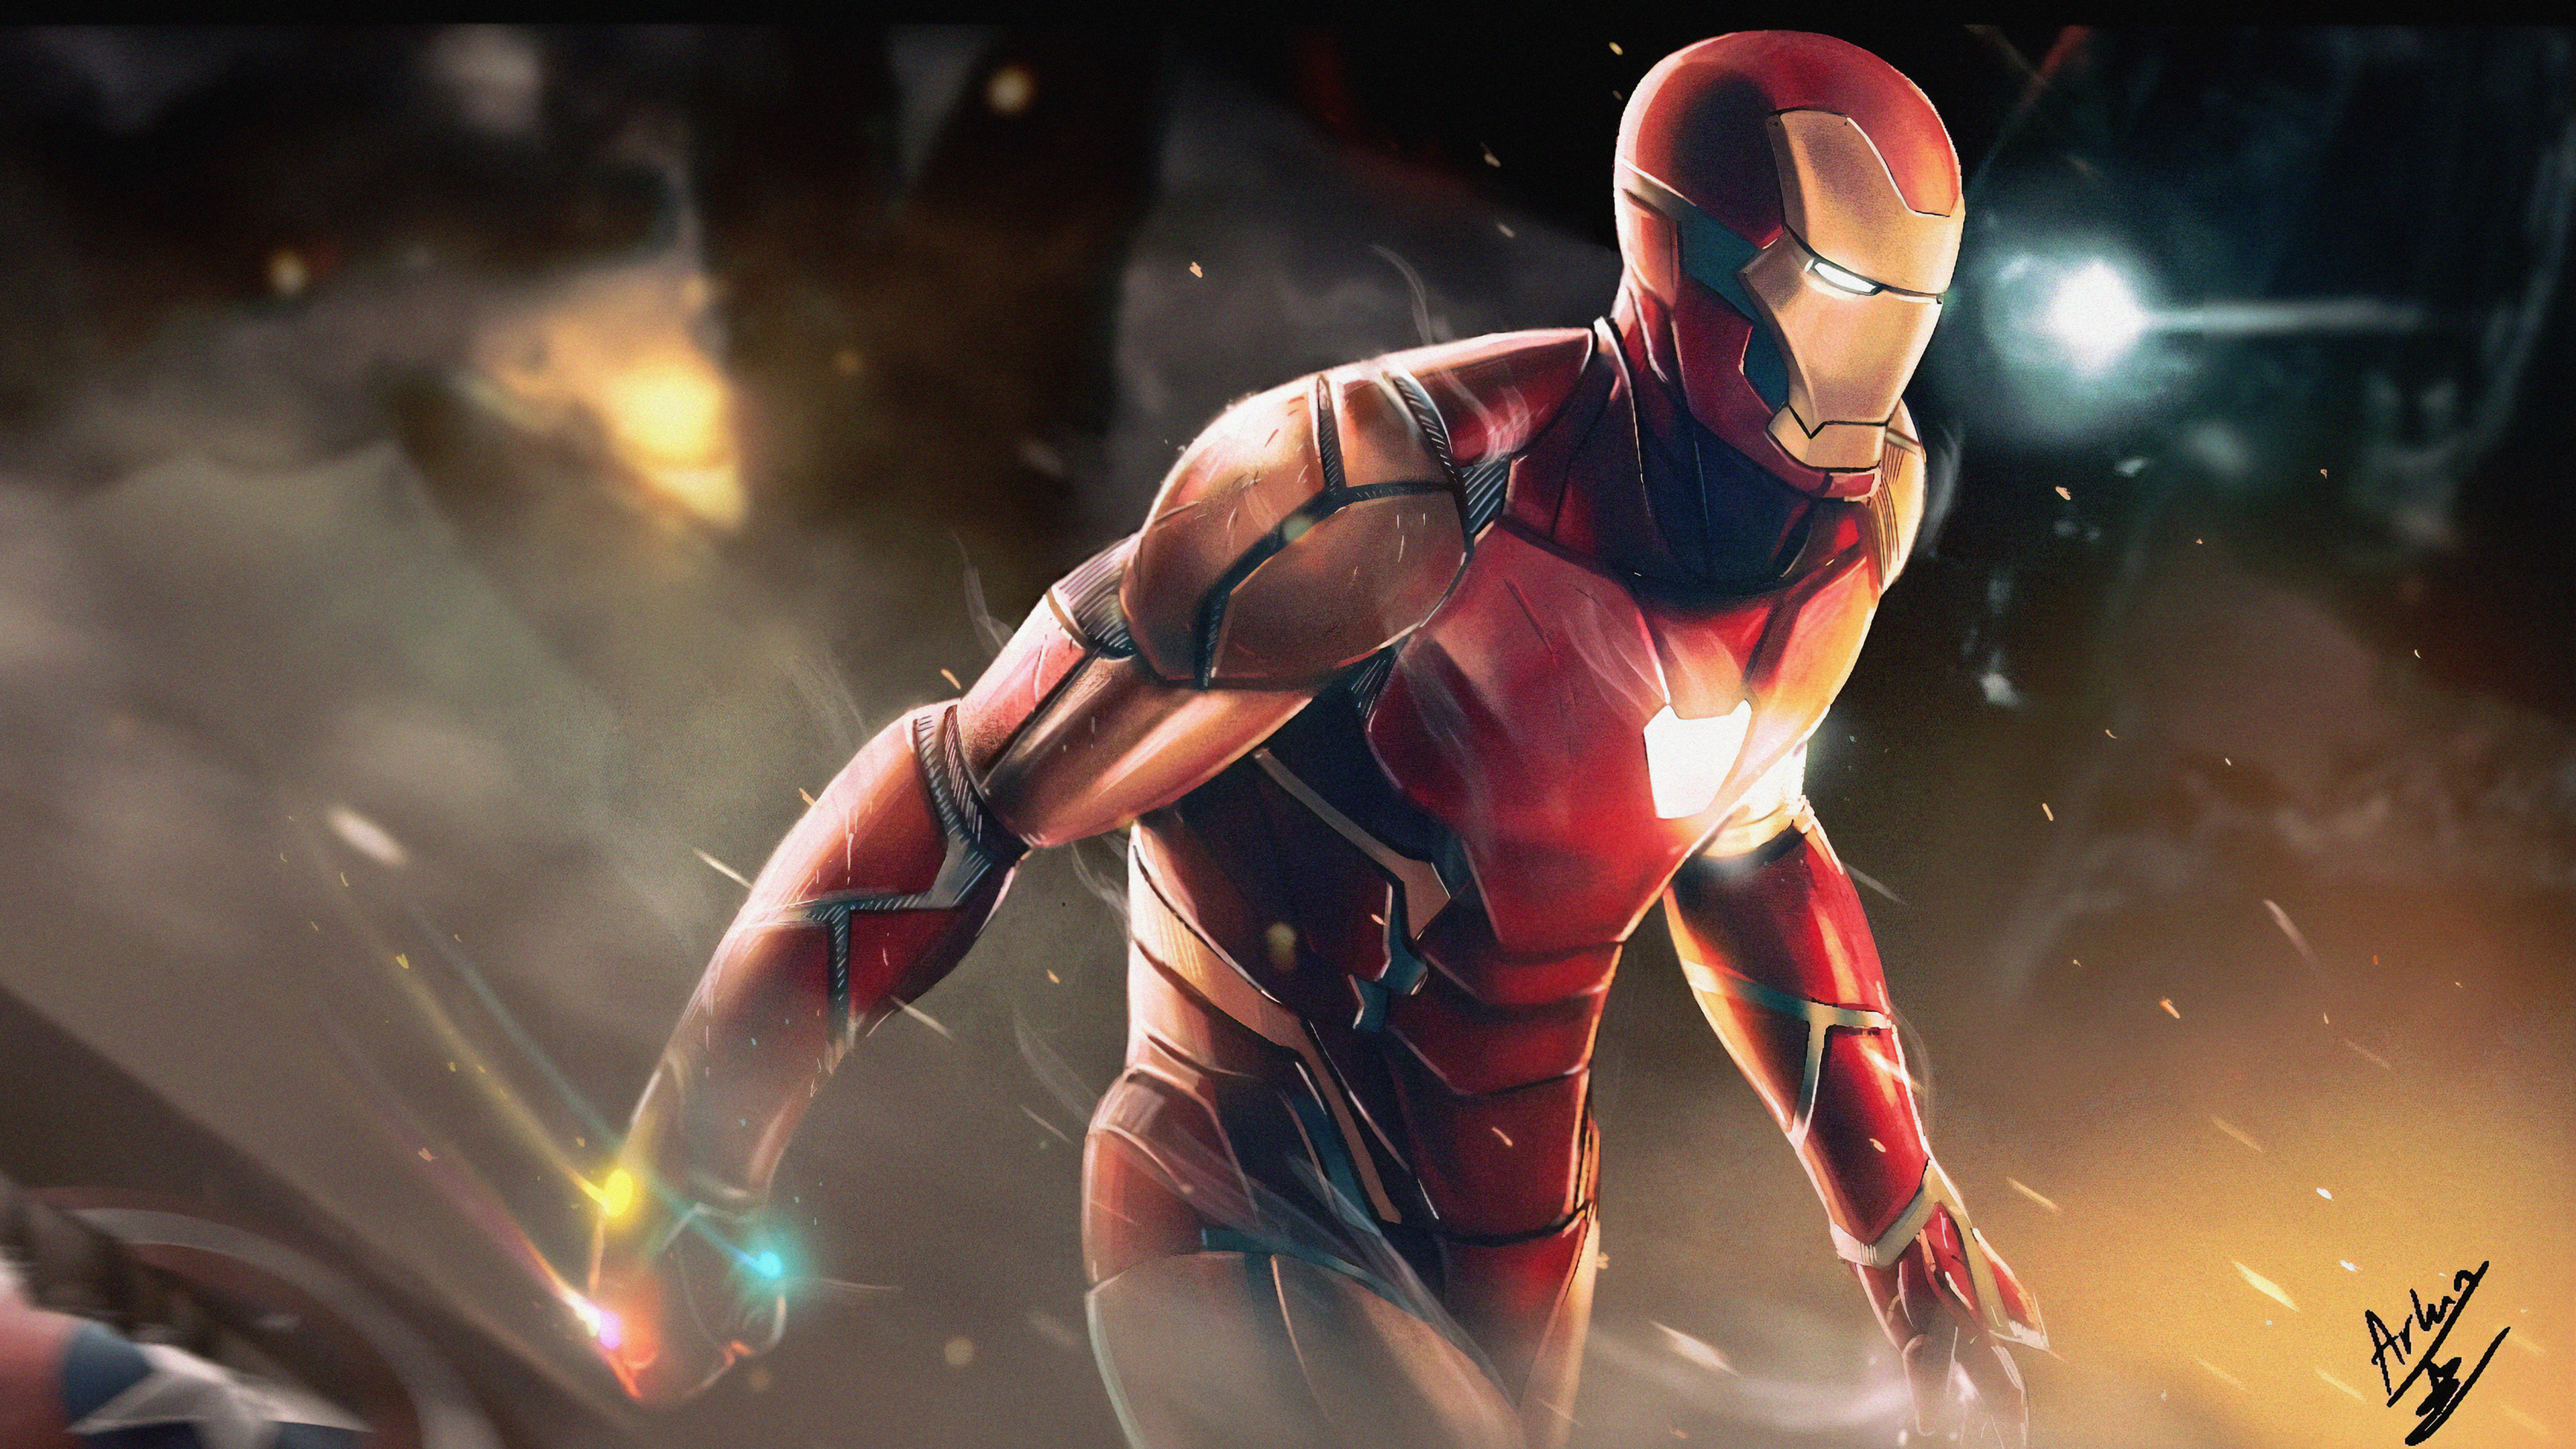 Iron Man In Avengers 4 4k Wallpapers Wallpapers Hd